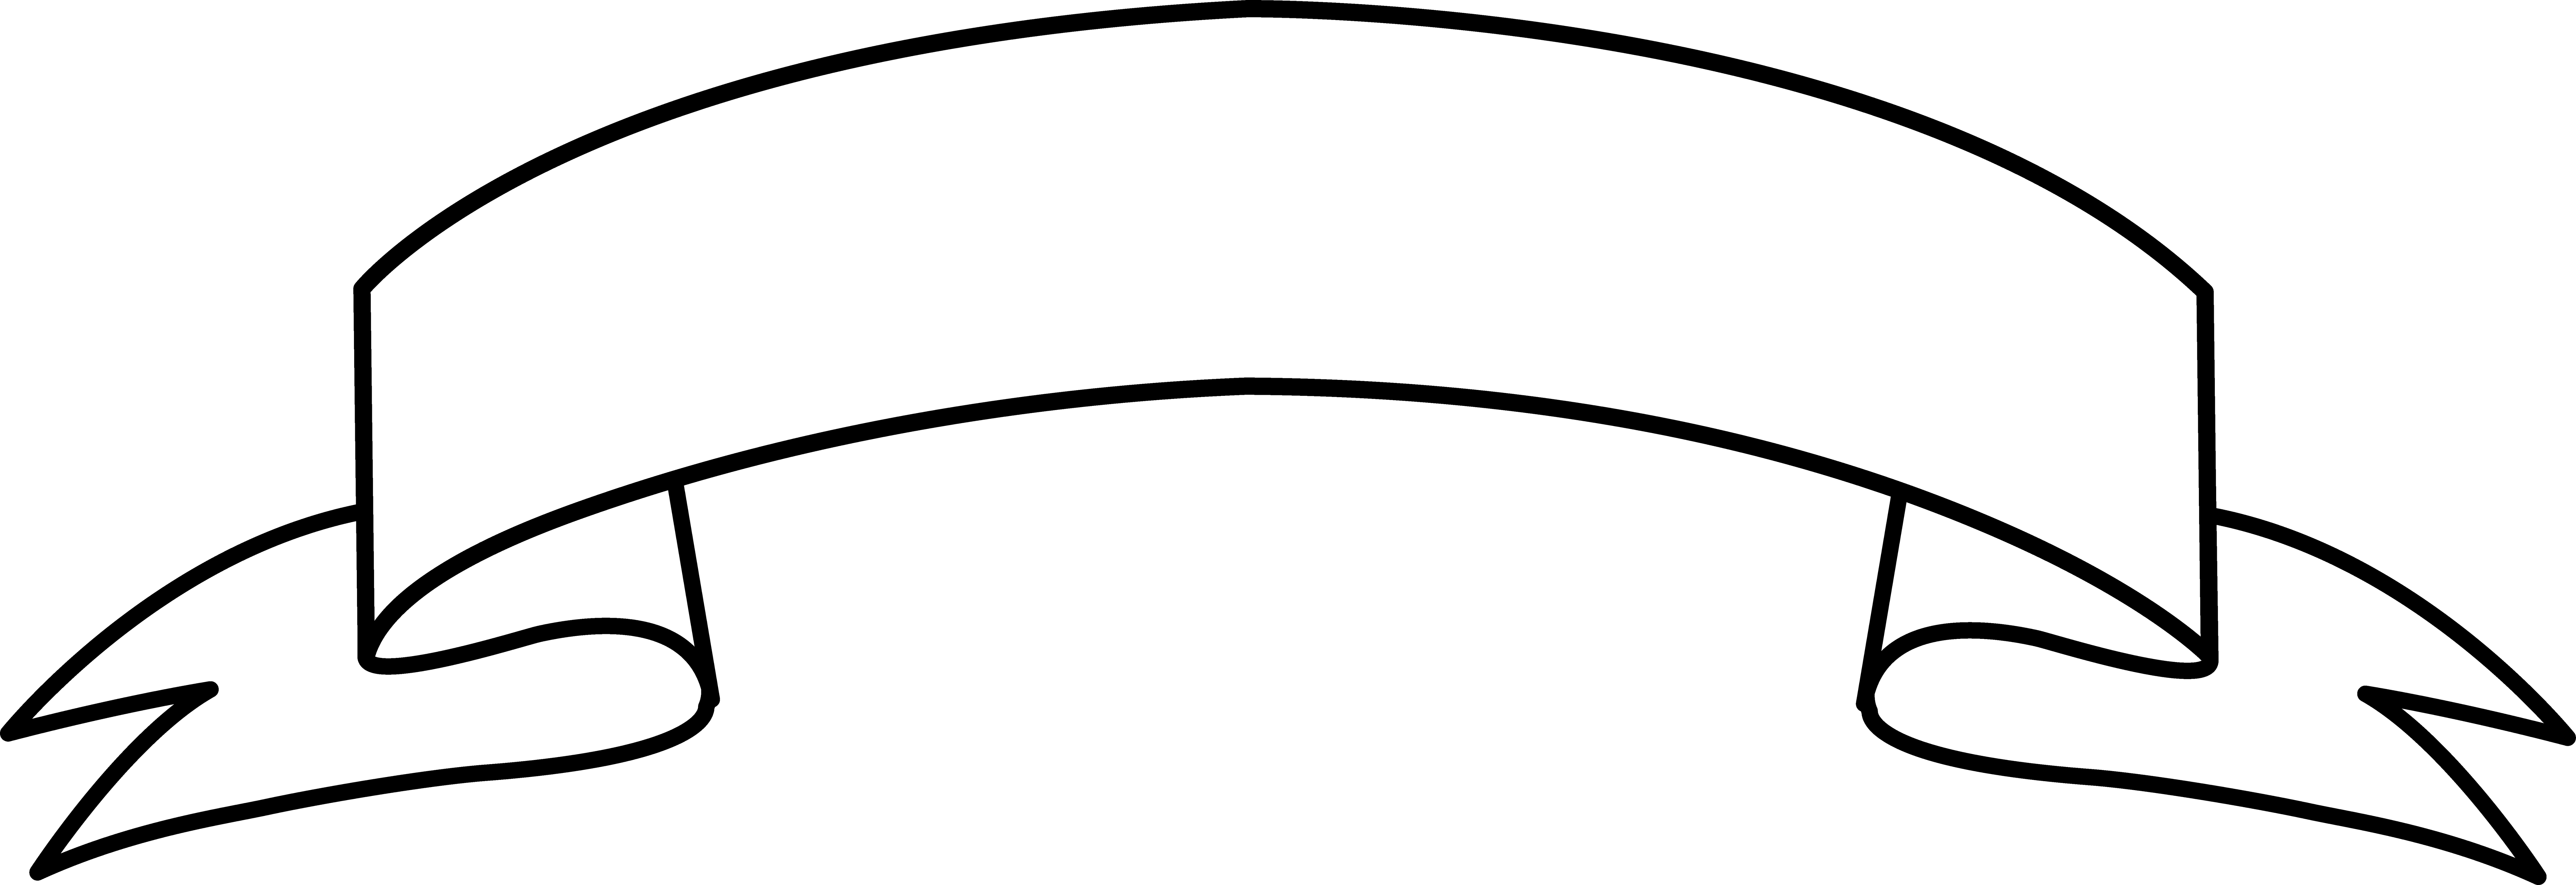 svg black and white Scroll banners clipart. Blank ribbon